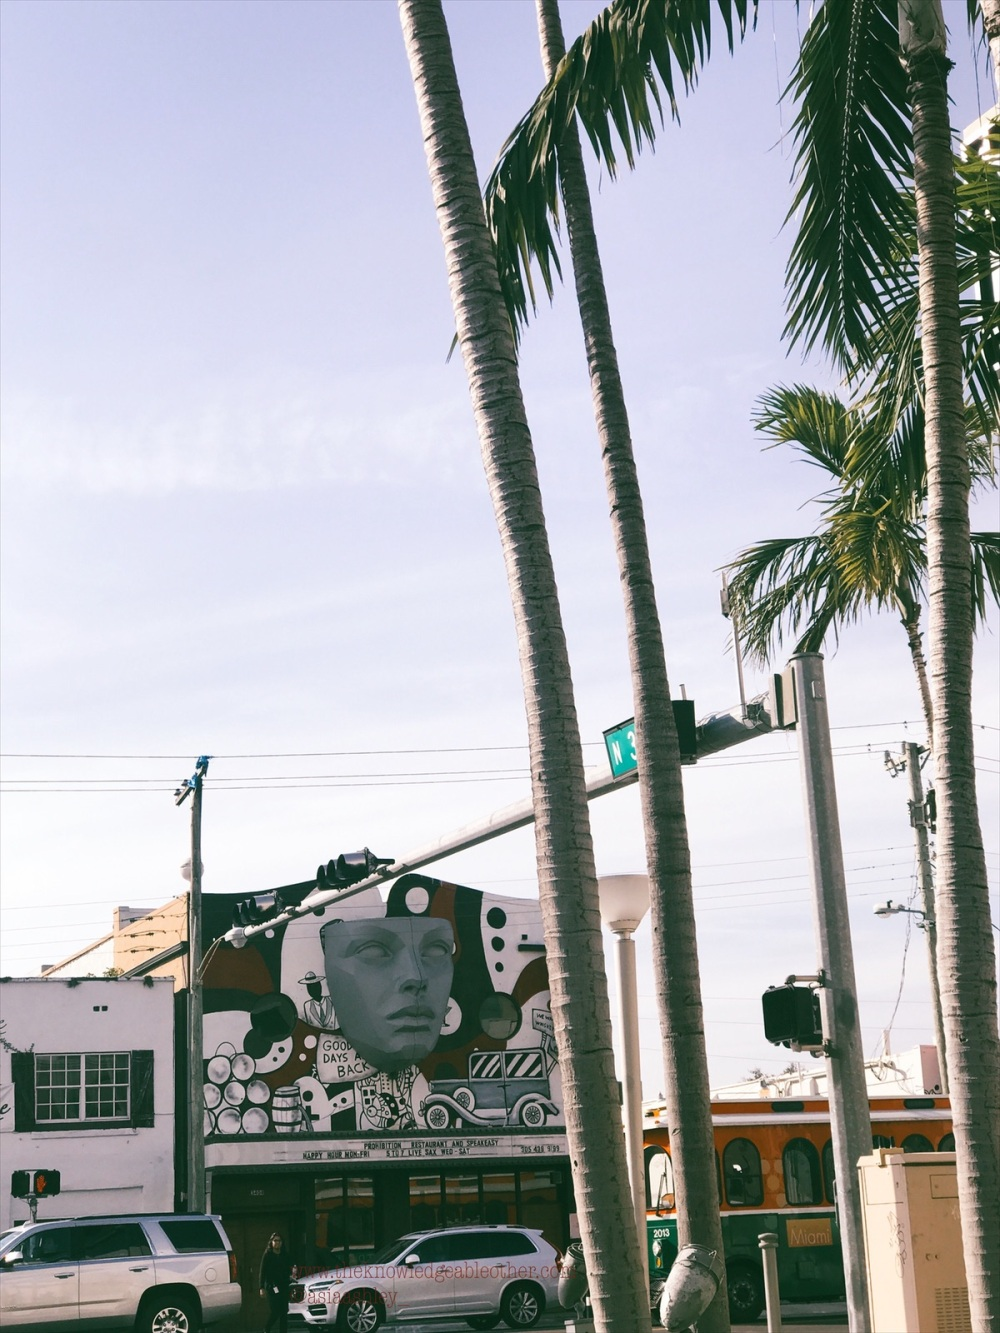 Processed with VSCO with q8 preset